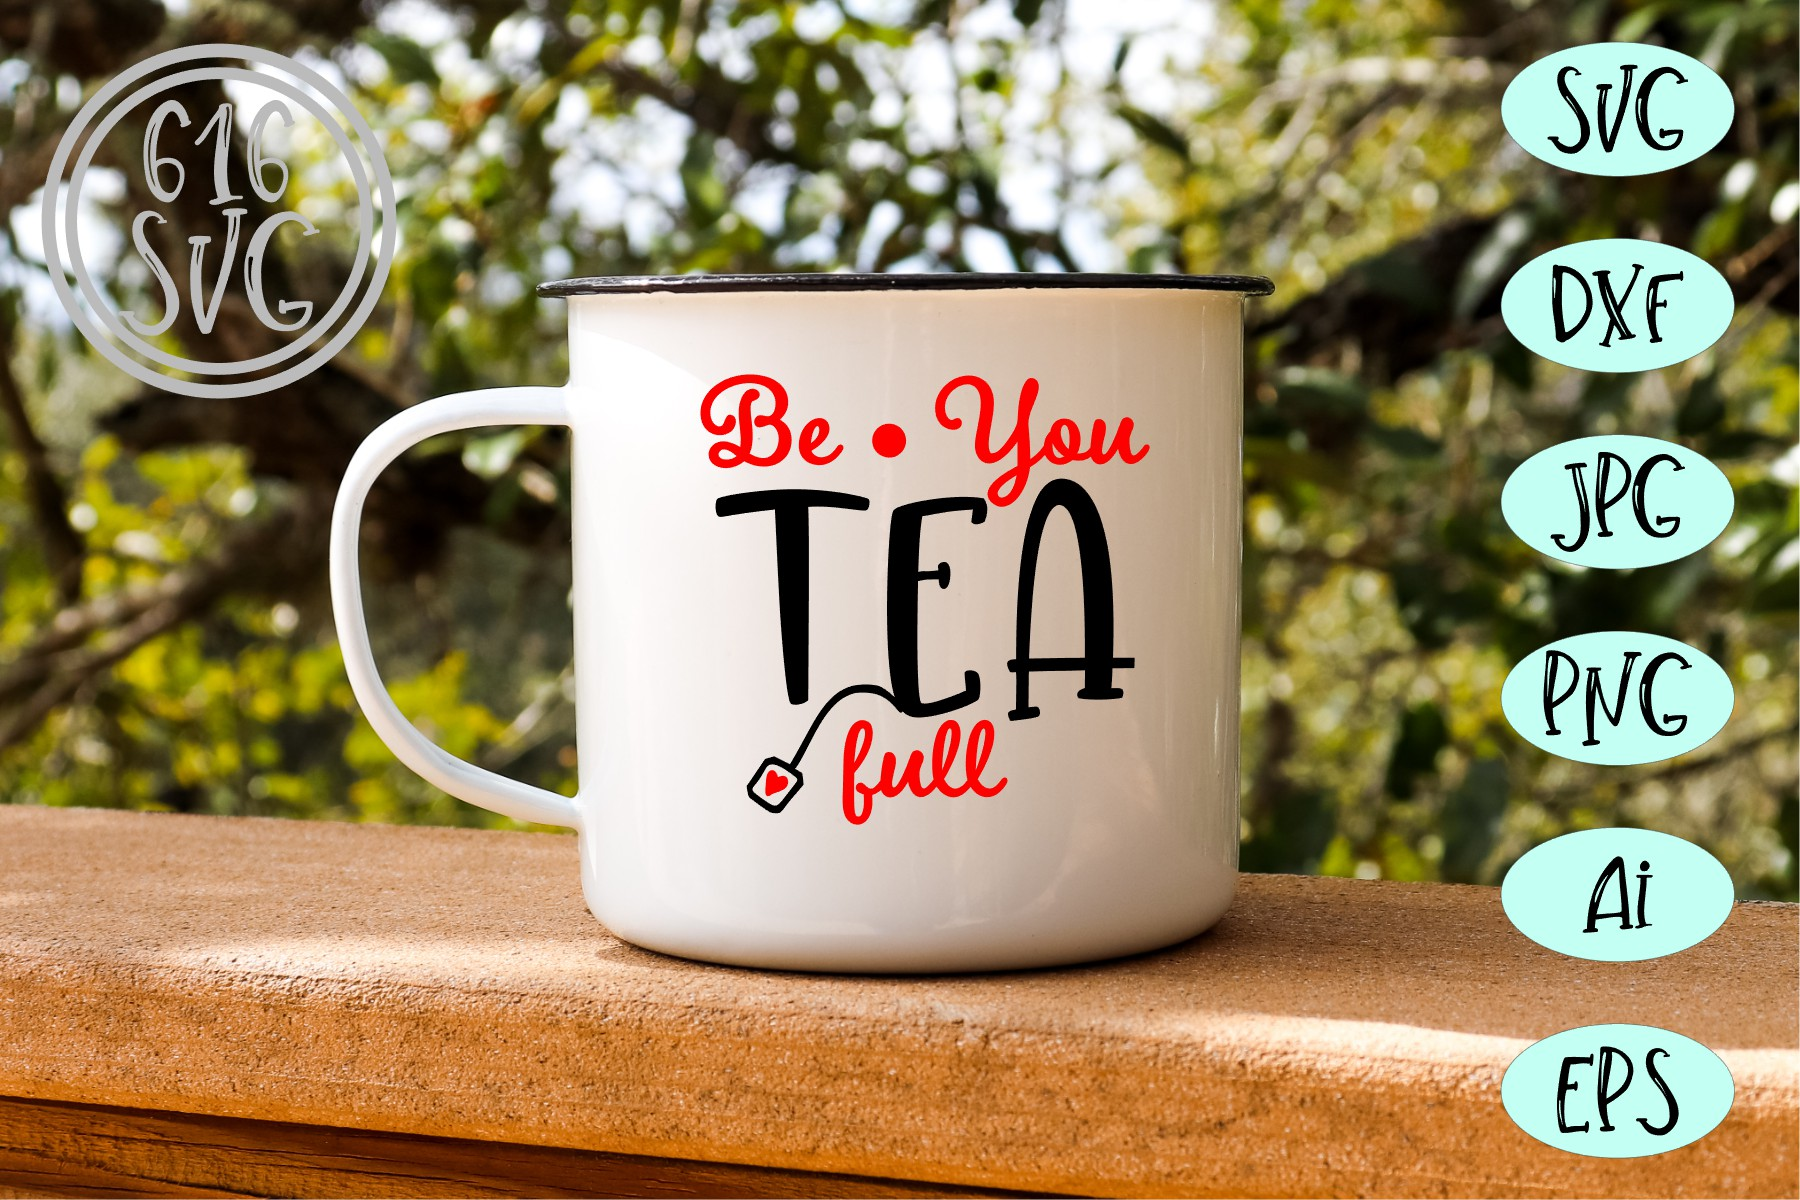 Be You Tea Full SVG, DXF, Ai, PNG example image 1